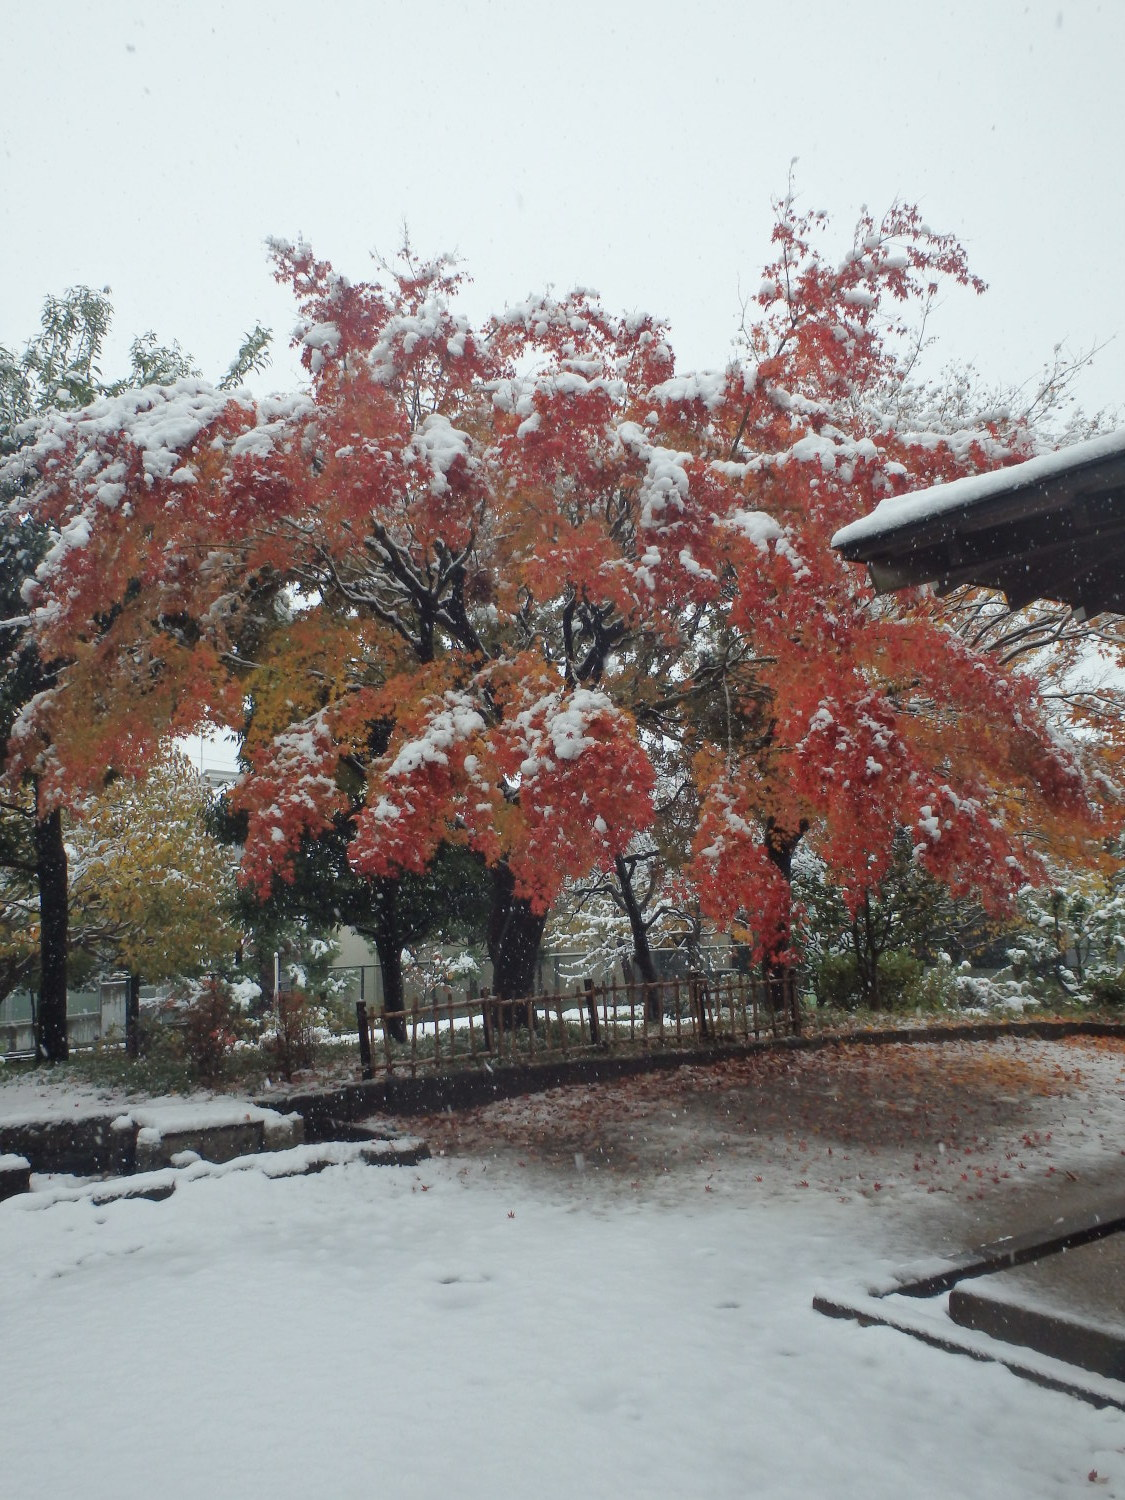 The first snow in 54 years and traffic park of colored leaves